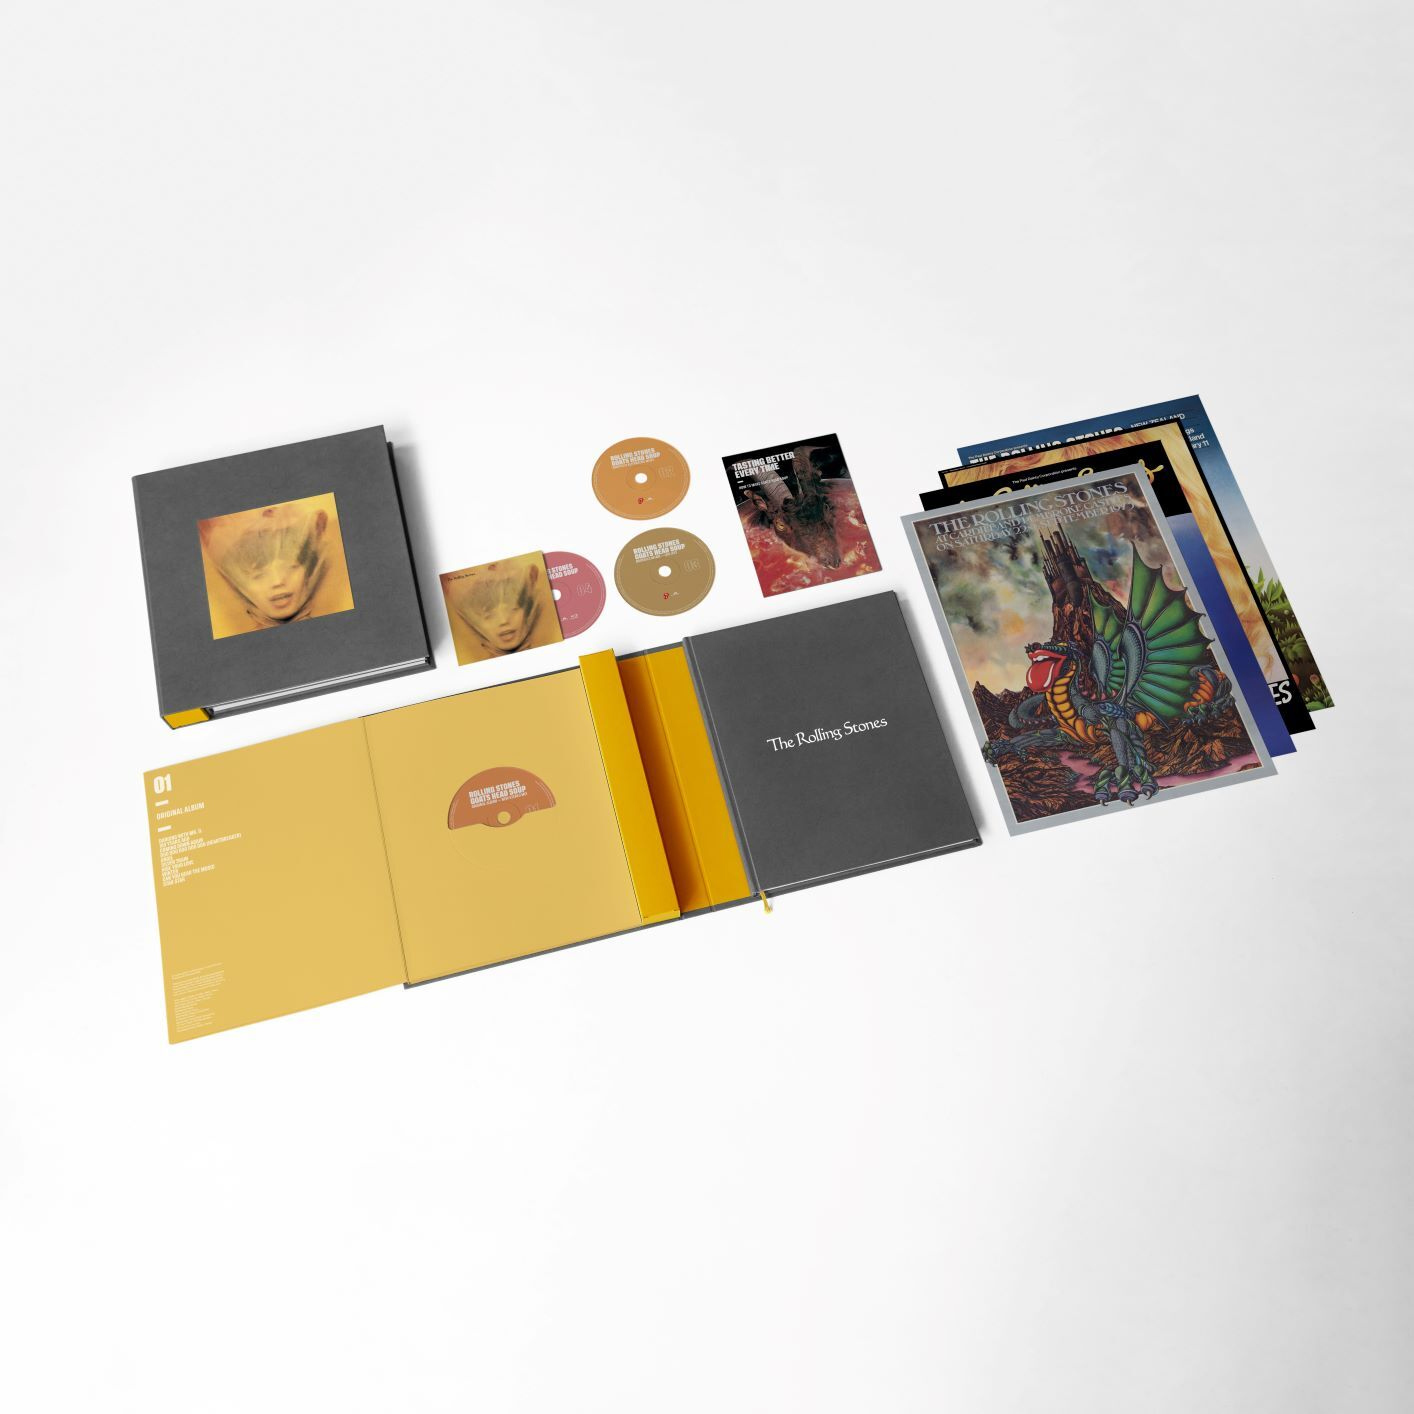 The Rolling Stones Goats Head Soup Super Deluxe 3CD & 1 Blu-Ray Box Set